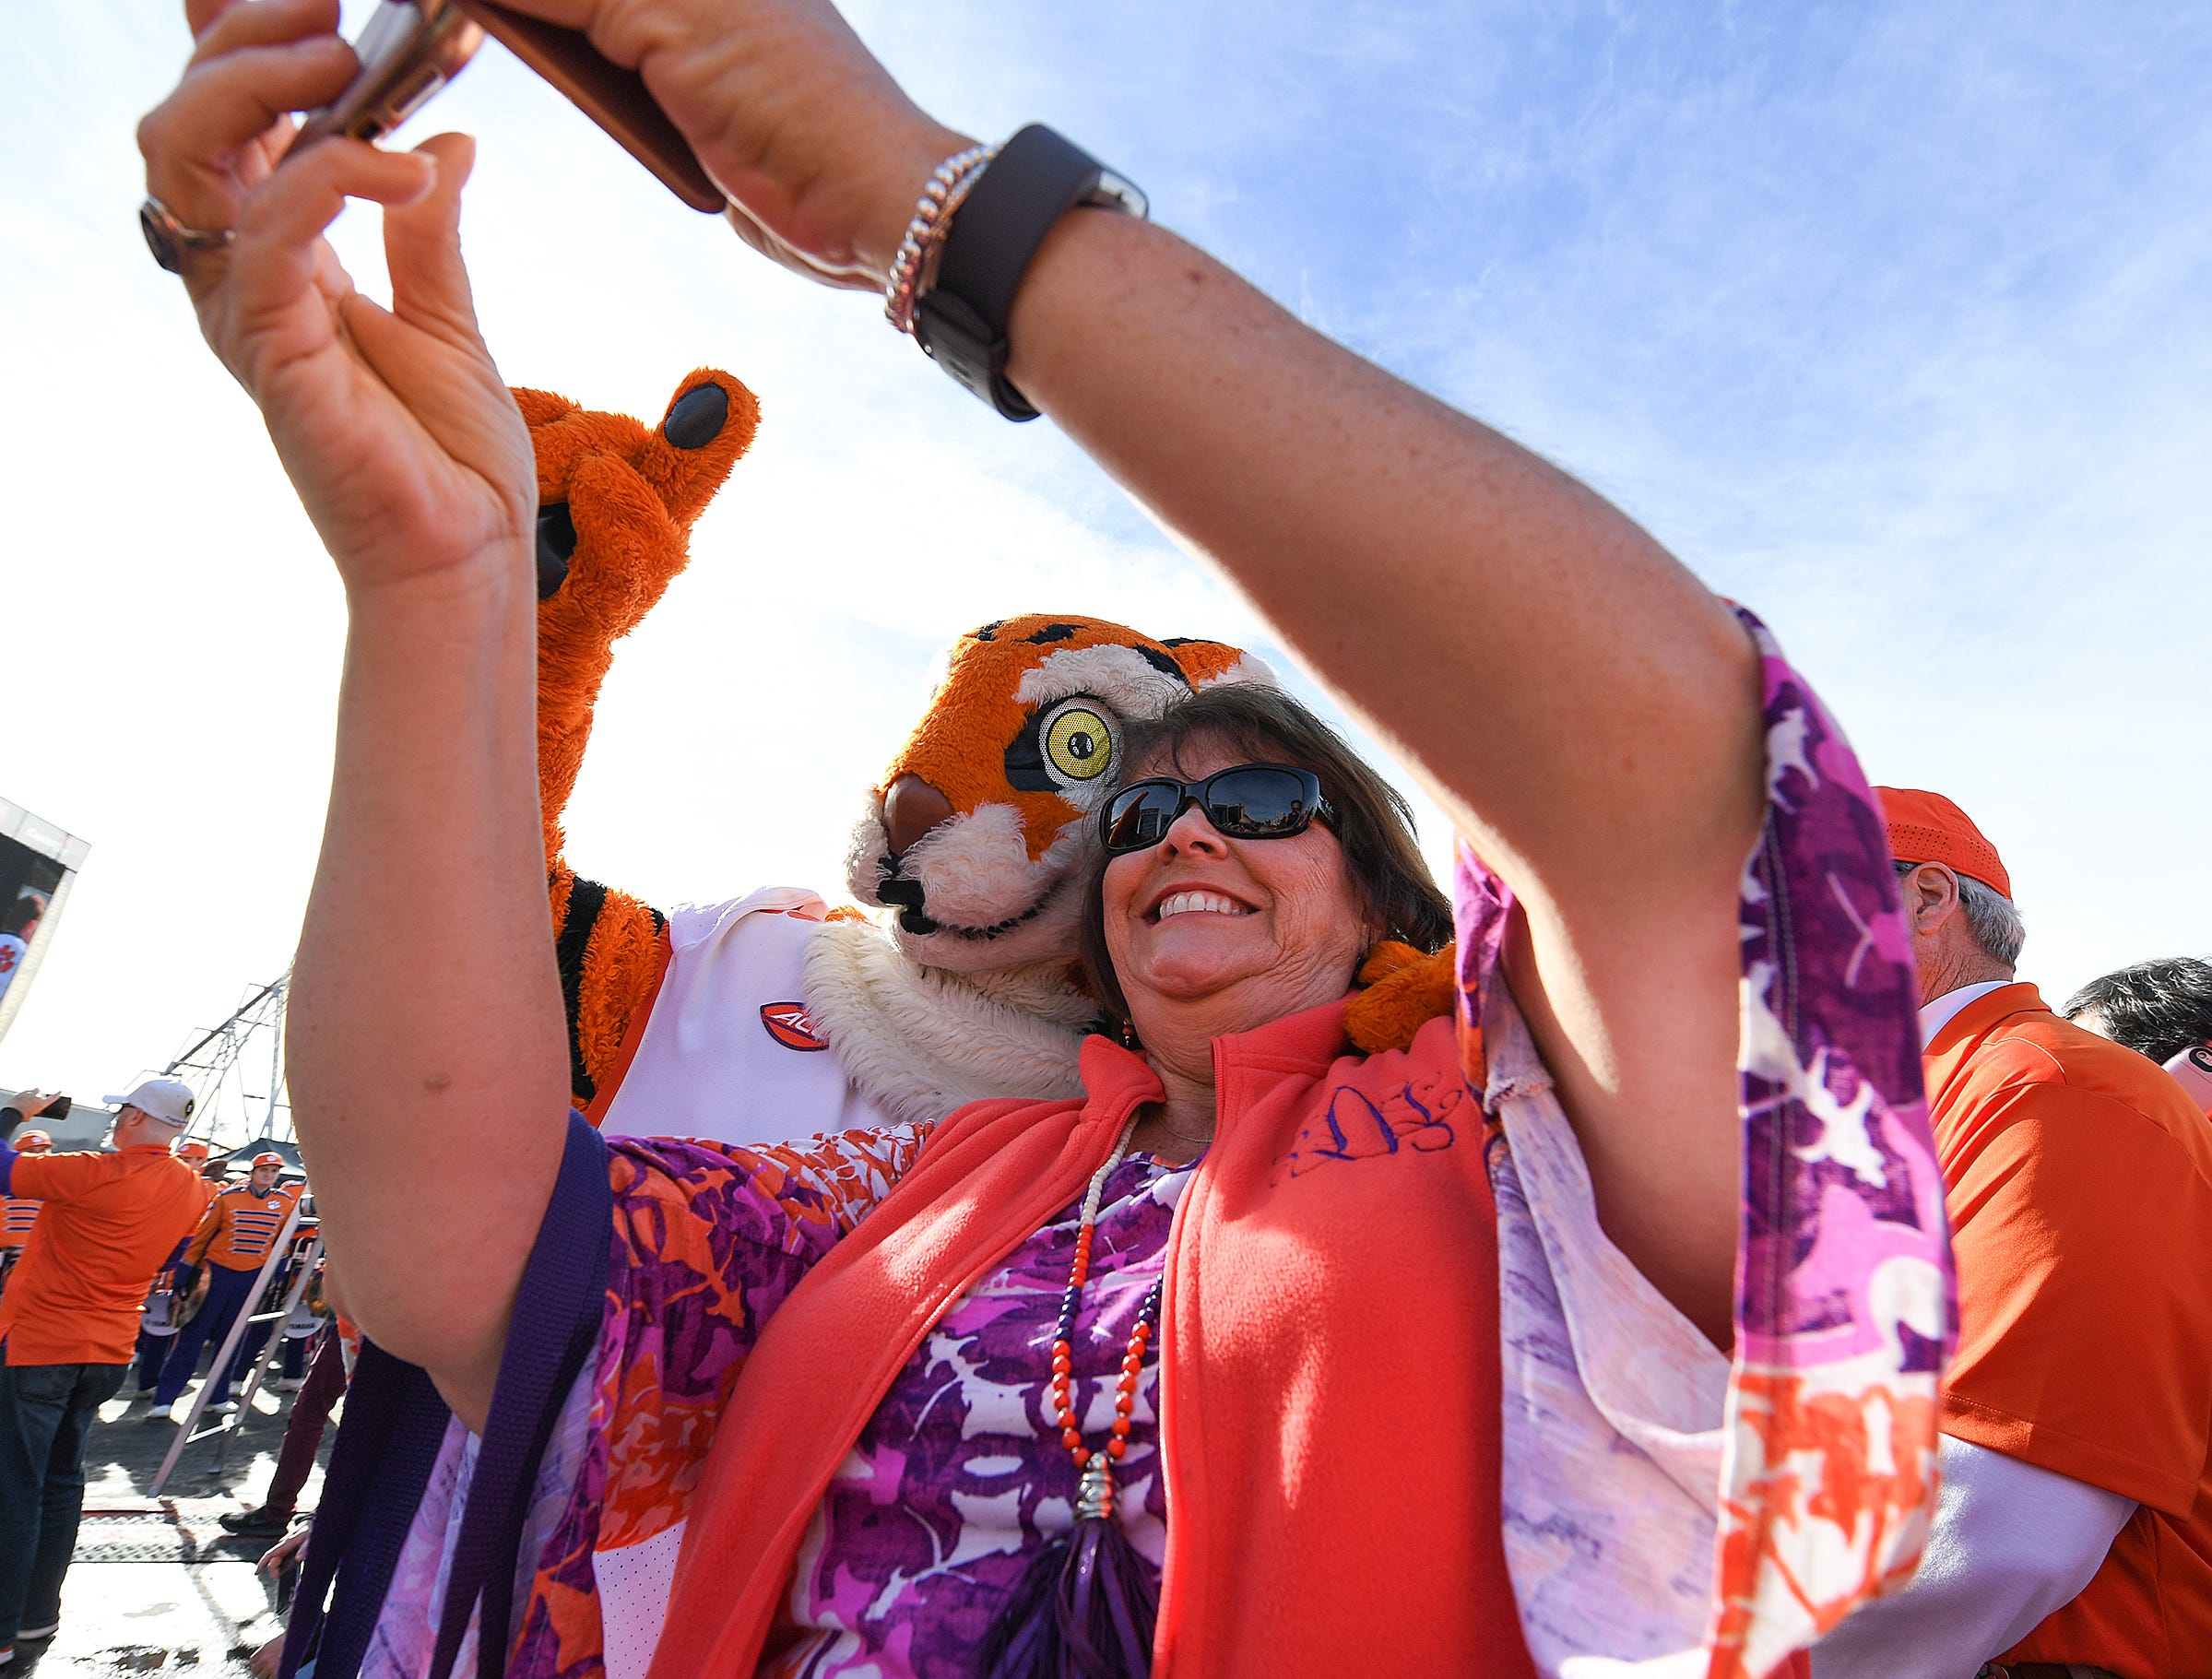 A Clemson fans poses for a selfie with the Tiger during the College Football Championship Playoff Tailgate outside Levi's Stadium in Santa Clara, CA Monday, January 7, 2019.